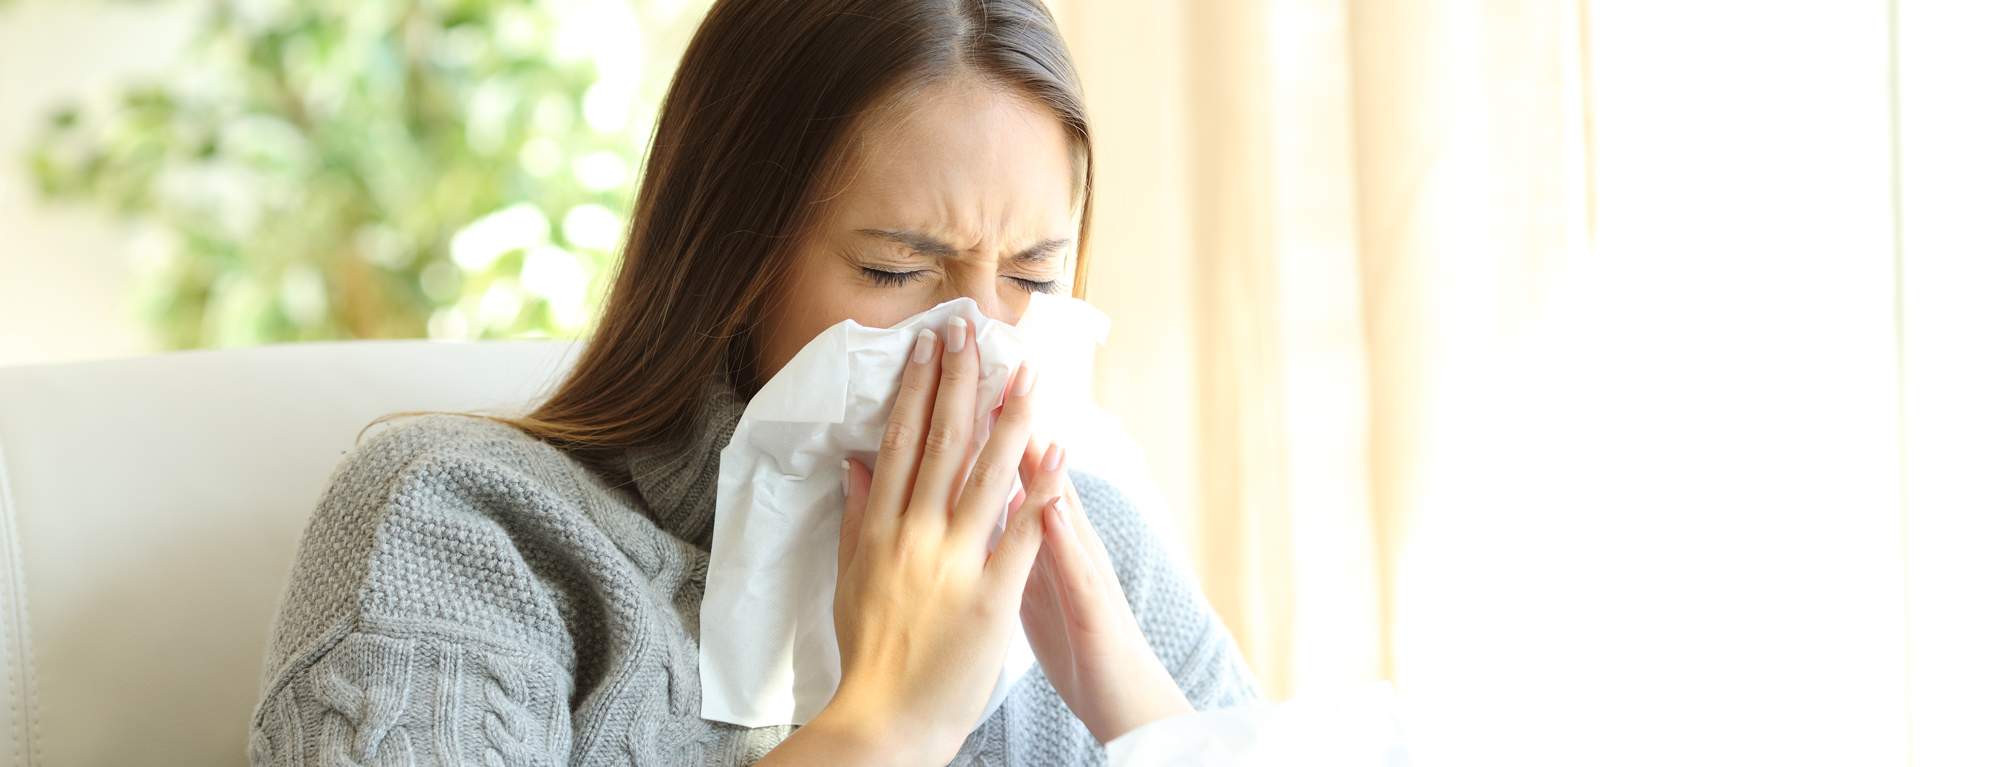 Dust Mites May Be Causing Your Winter Allergies picture